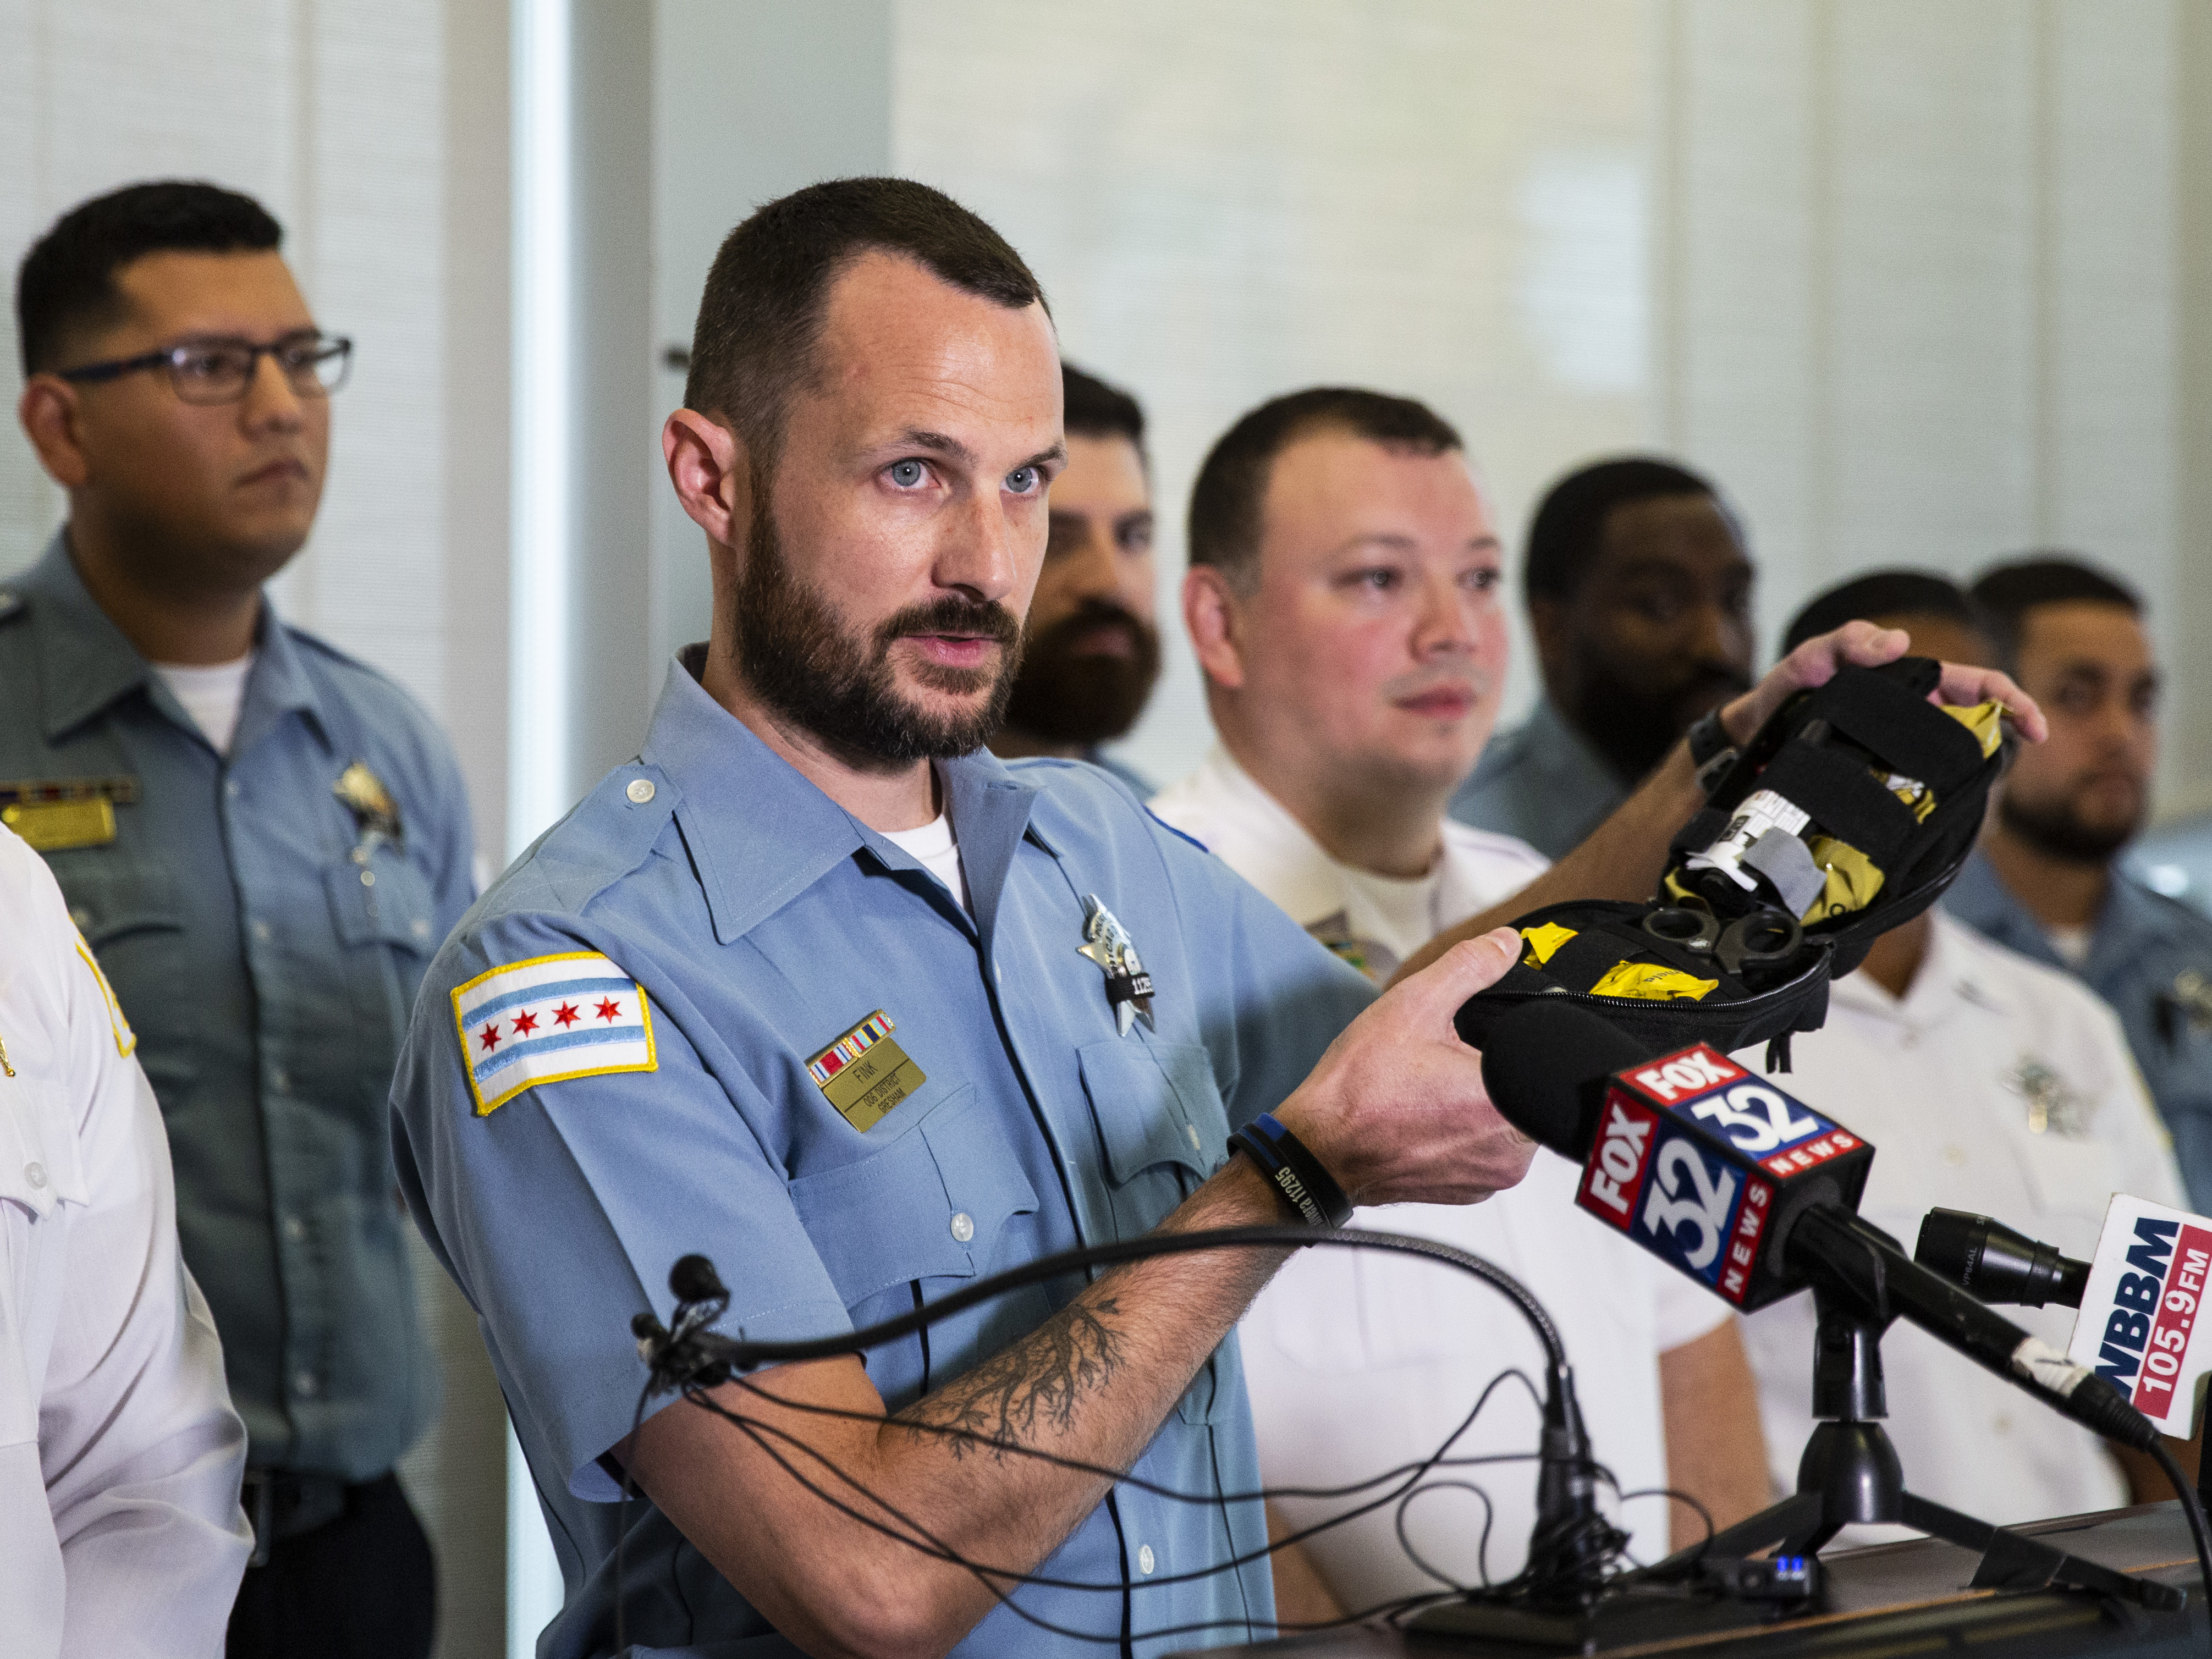 Chicago Police Officer Christopher Fink holds up equipment he used while he and other first responders saved a 14-year-old boy who was shot in the chest earlier this month during a press conference at the Gresham station, Monday morning, Oct. 21, 2019.